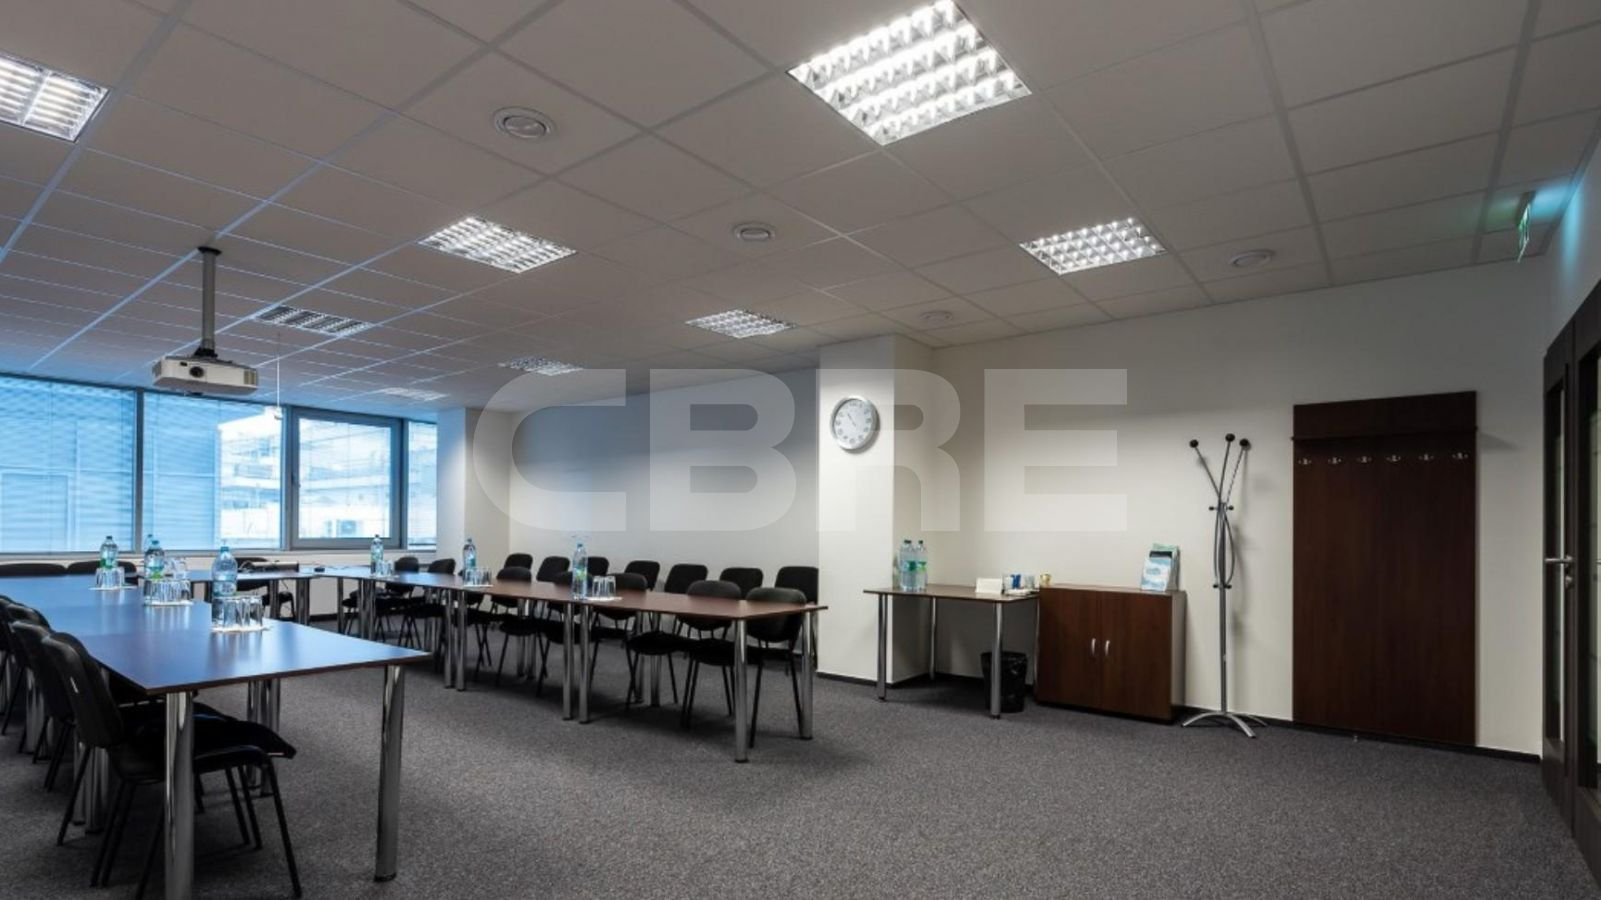 Trade Center Košice, Košice - Staré Mesto | Offices for rent by CBRE | 2